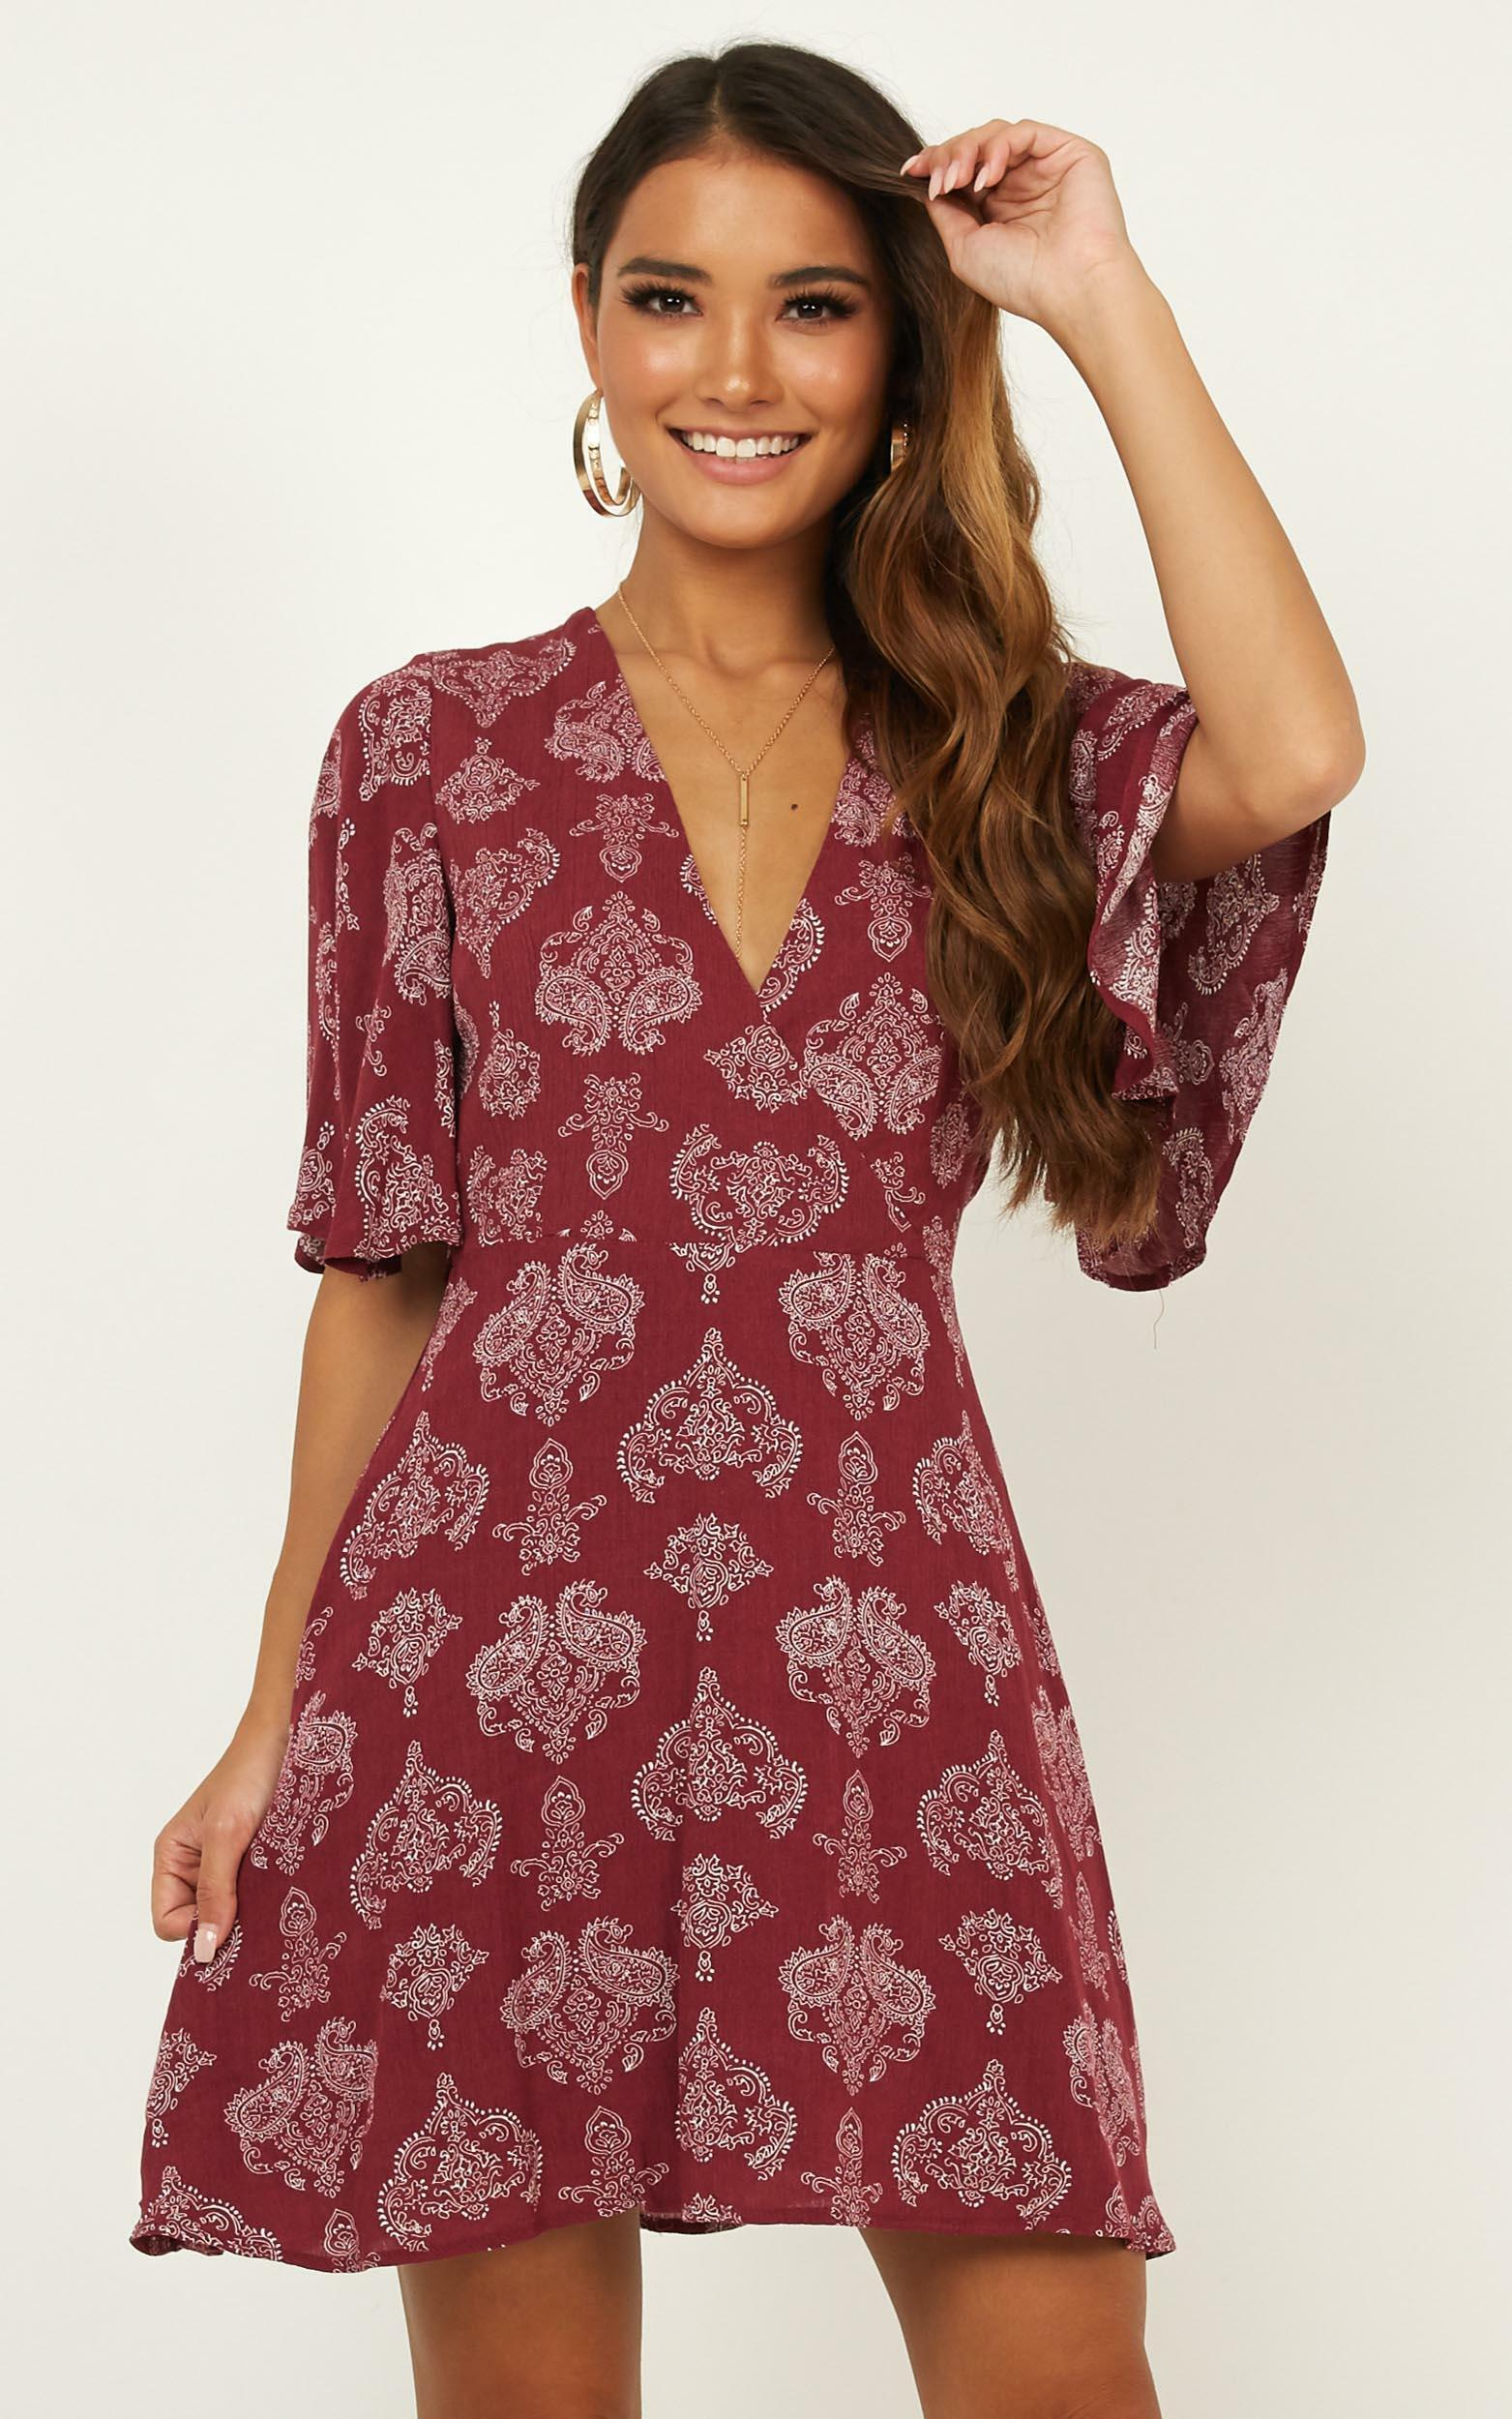 Beginners Luck dress in wine paisley print - 20 (XXXXL), Wine, hi-res image number null